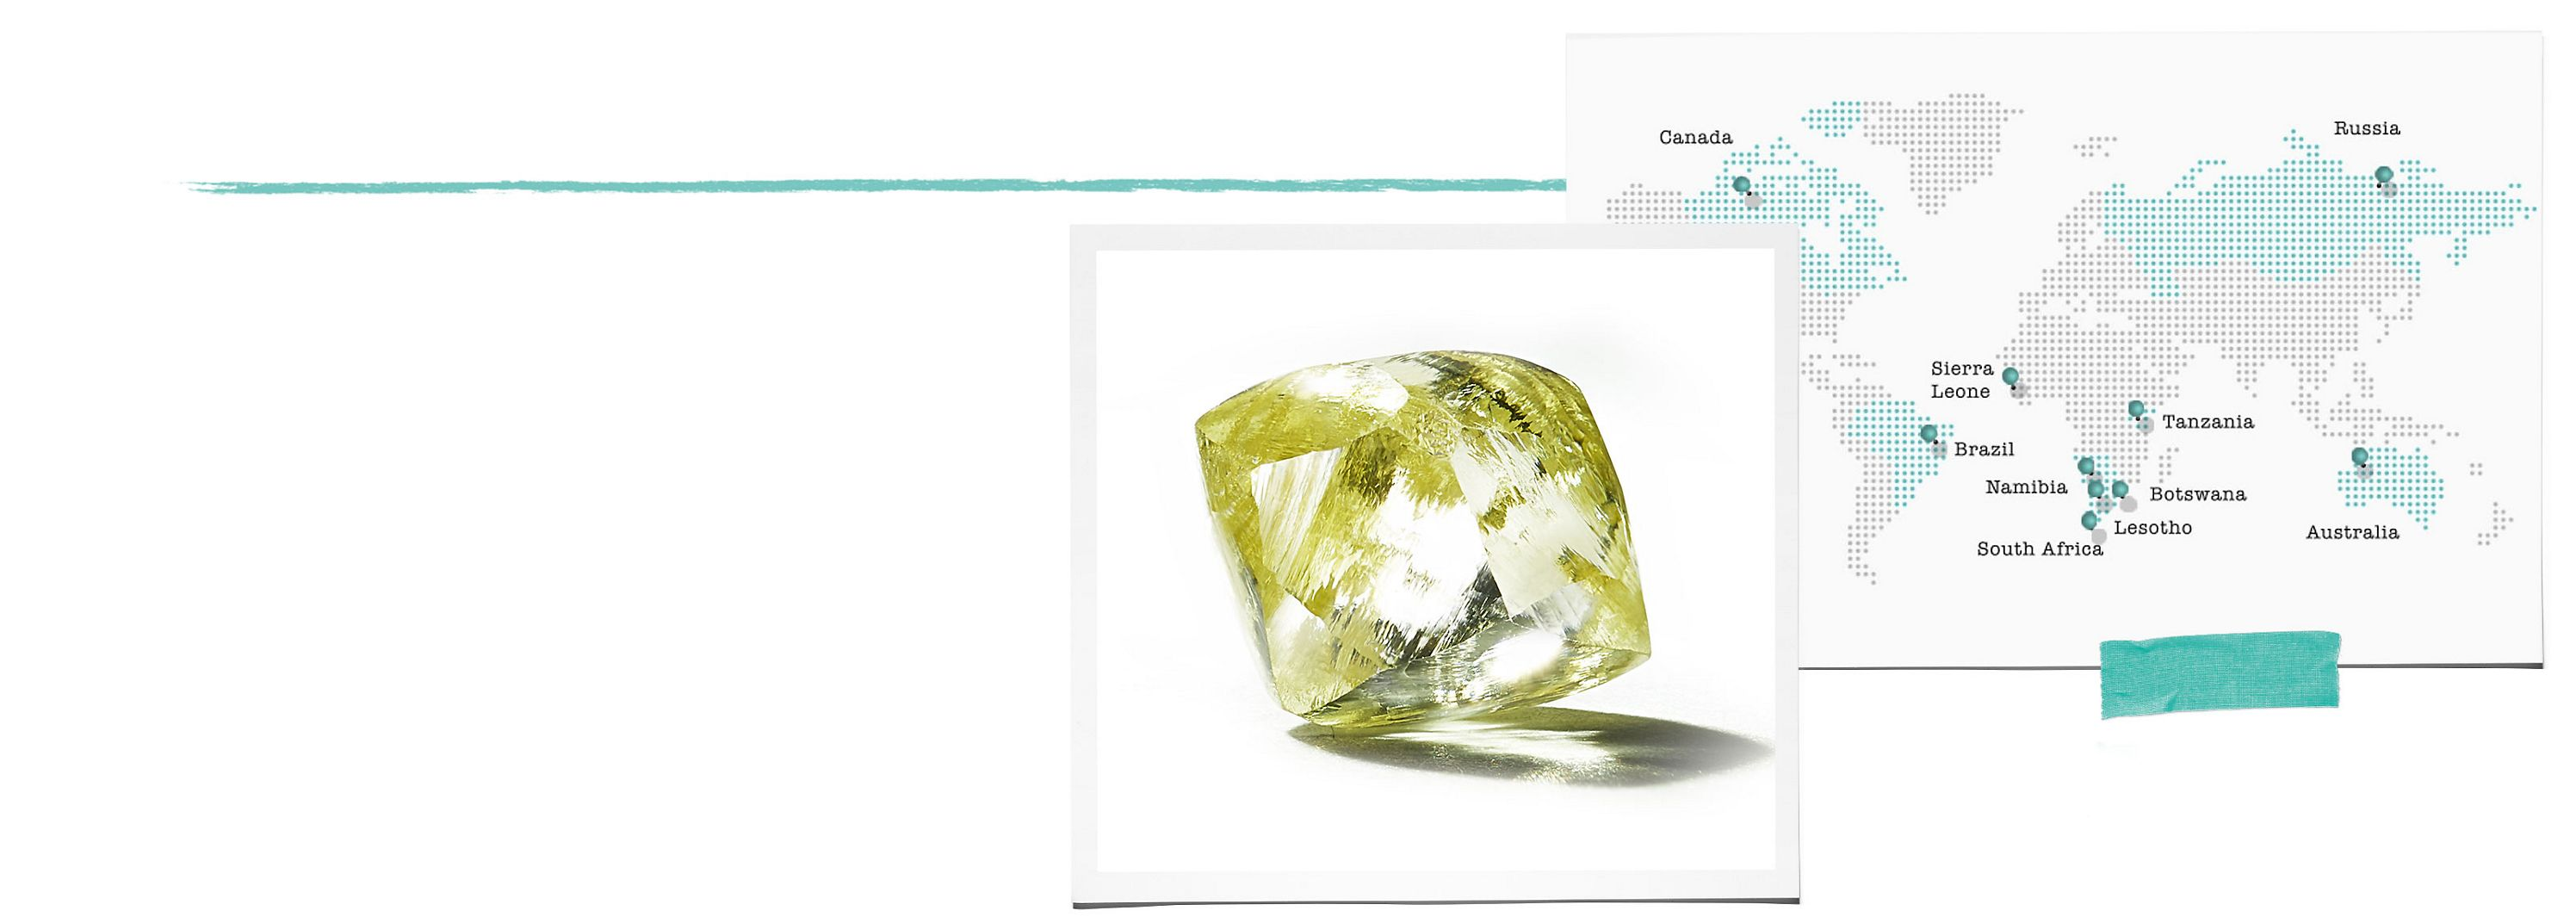 Tiffany & Co. 2019 Diamond Source Initiative